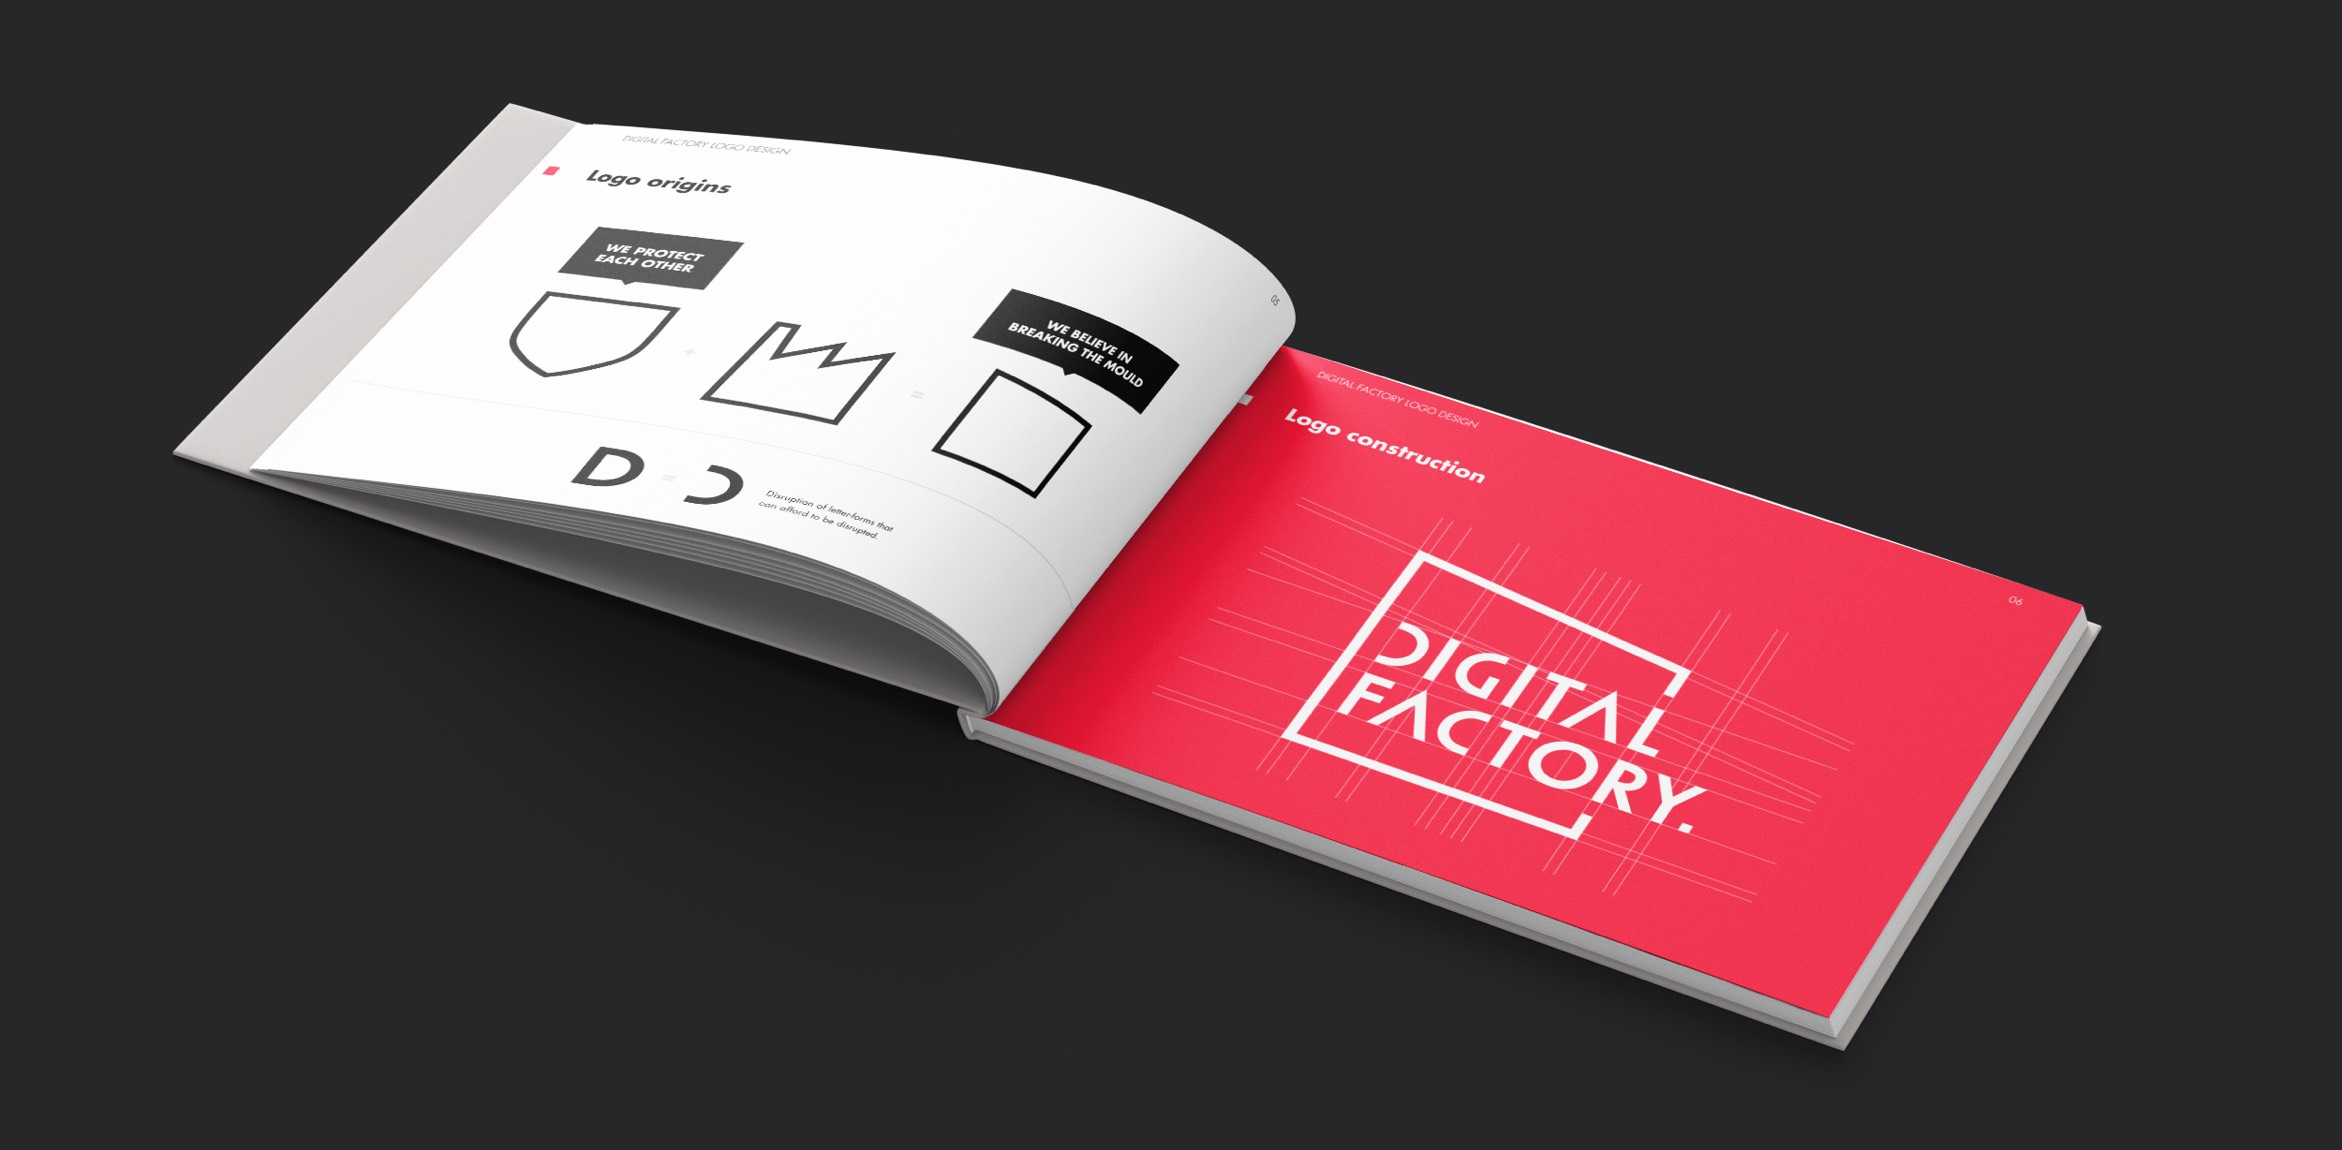 Digital Factory Logo Book